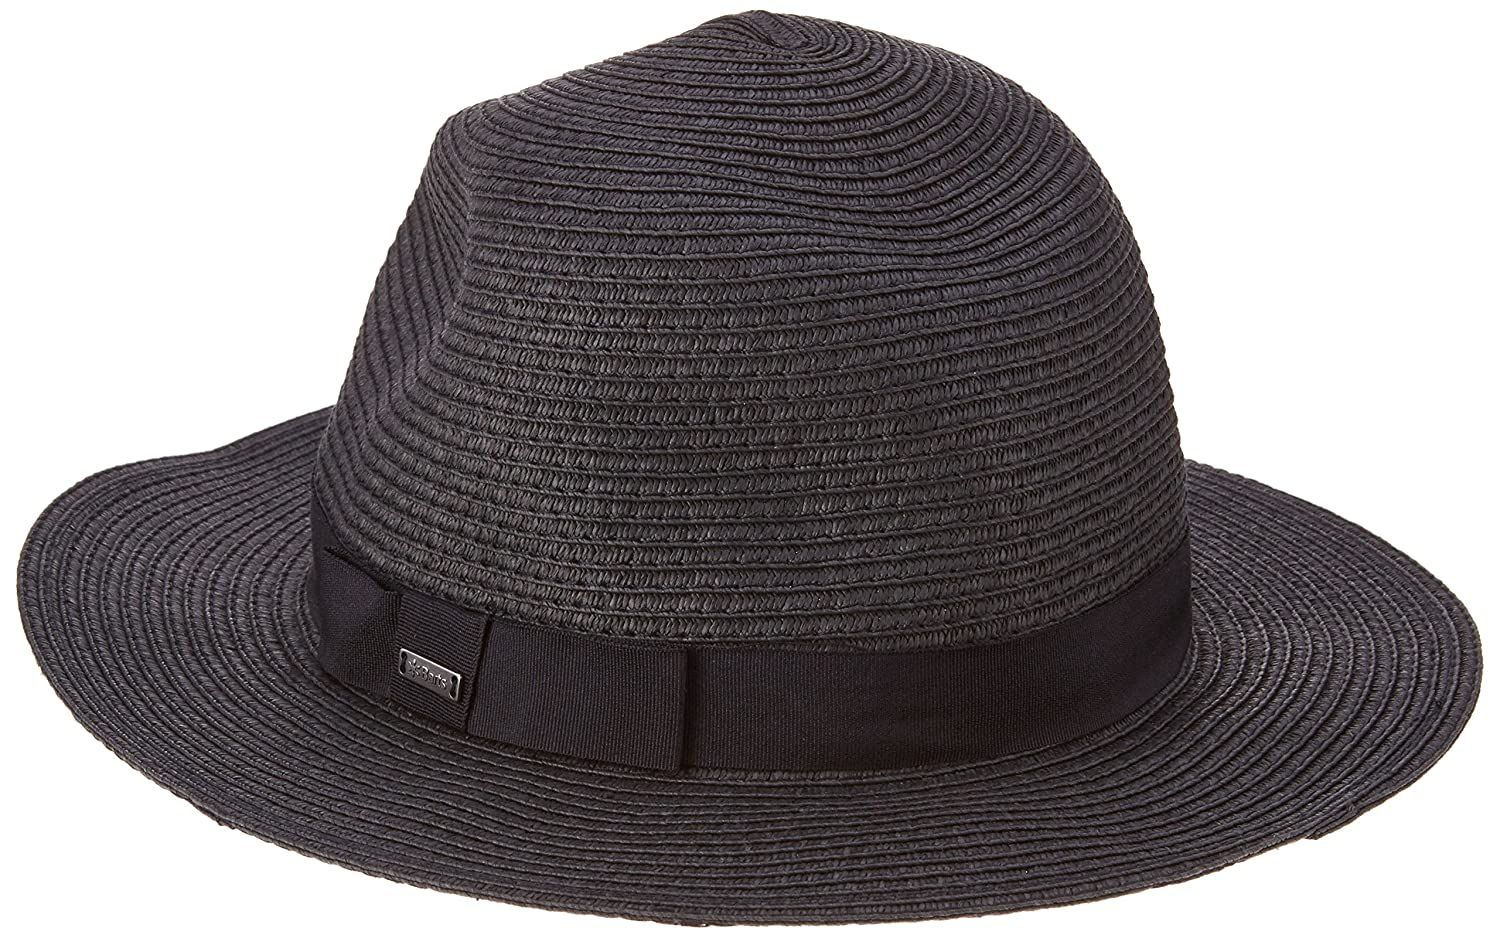 Barts Aveloz Panama Hat Black (Nero) Large 15-0000008206